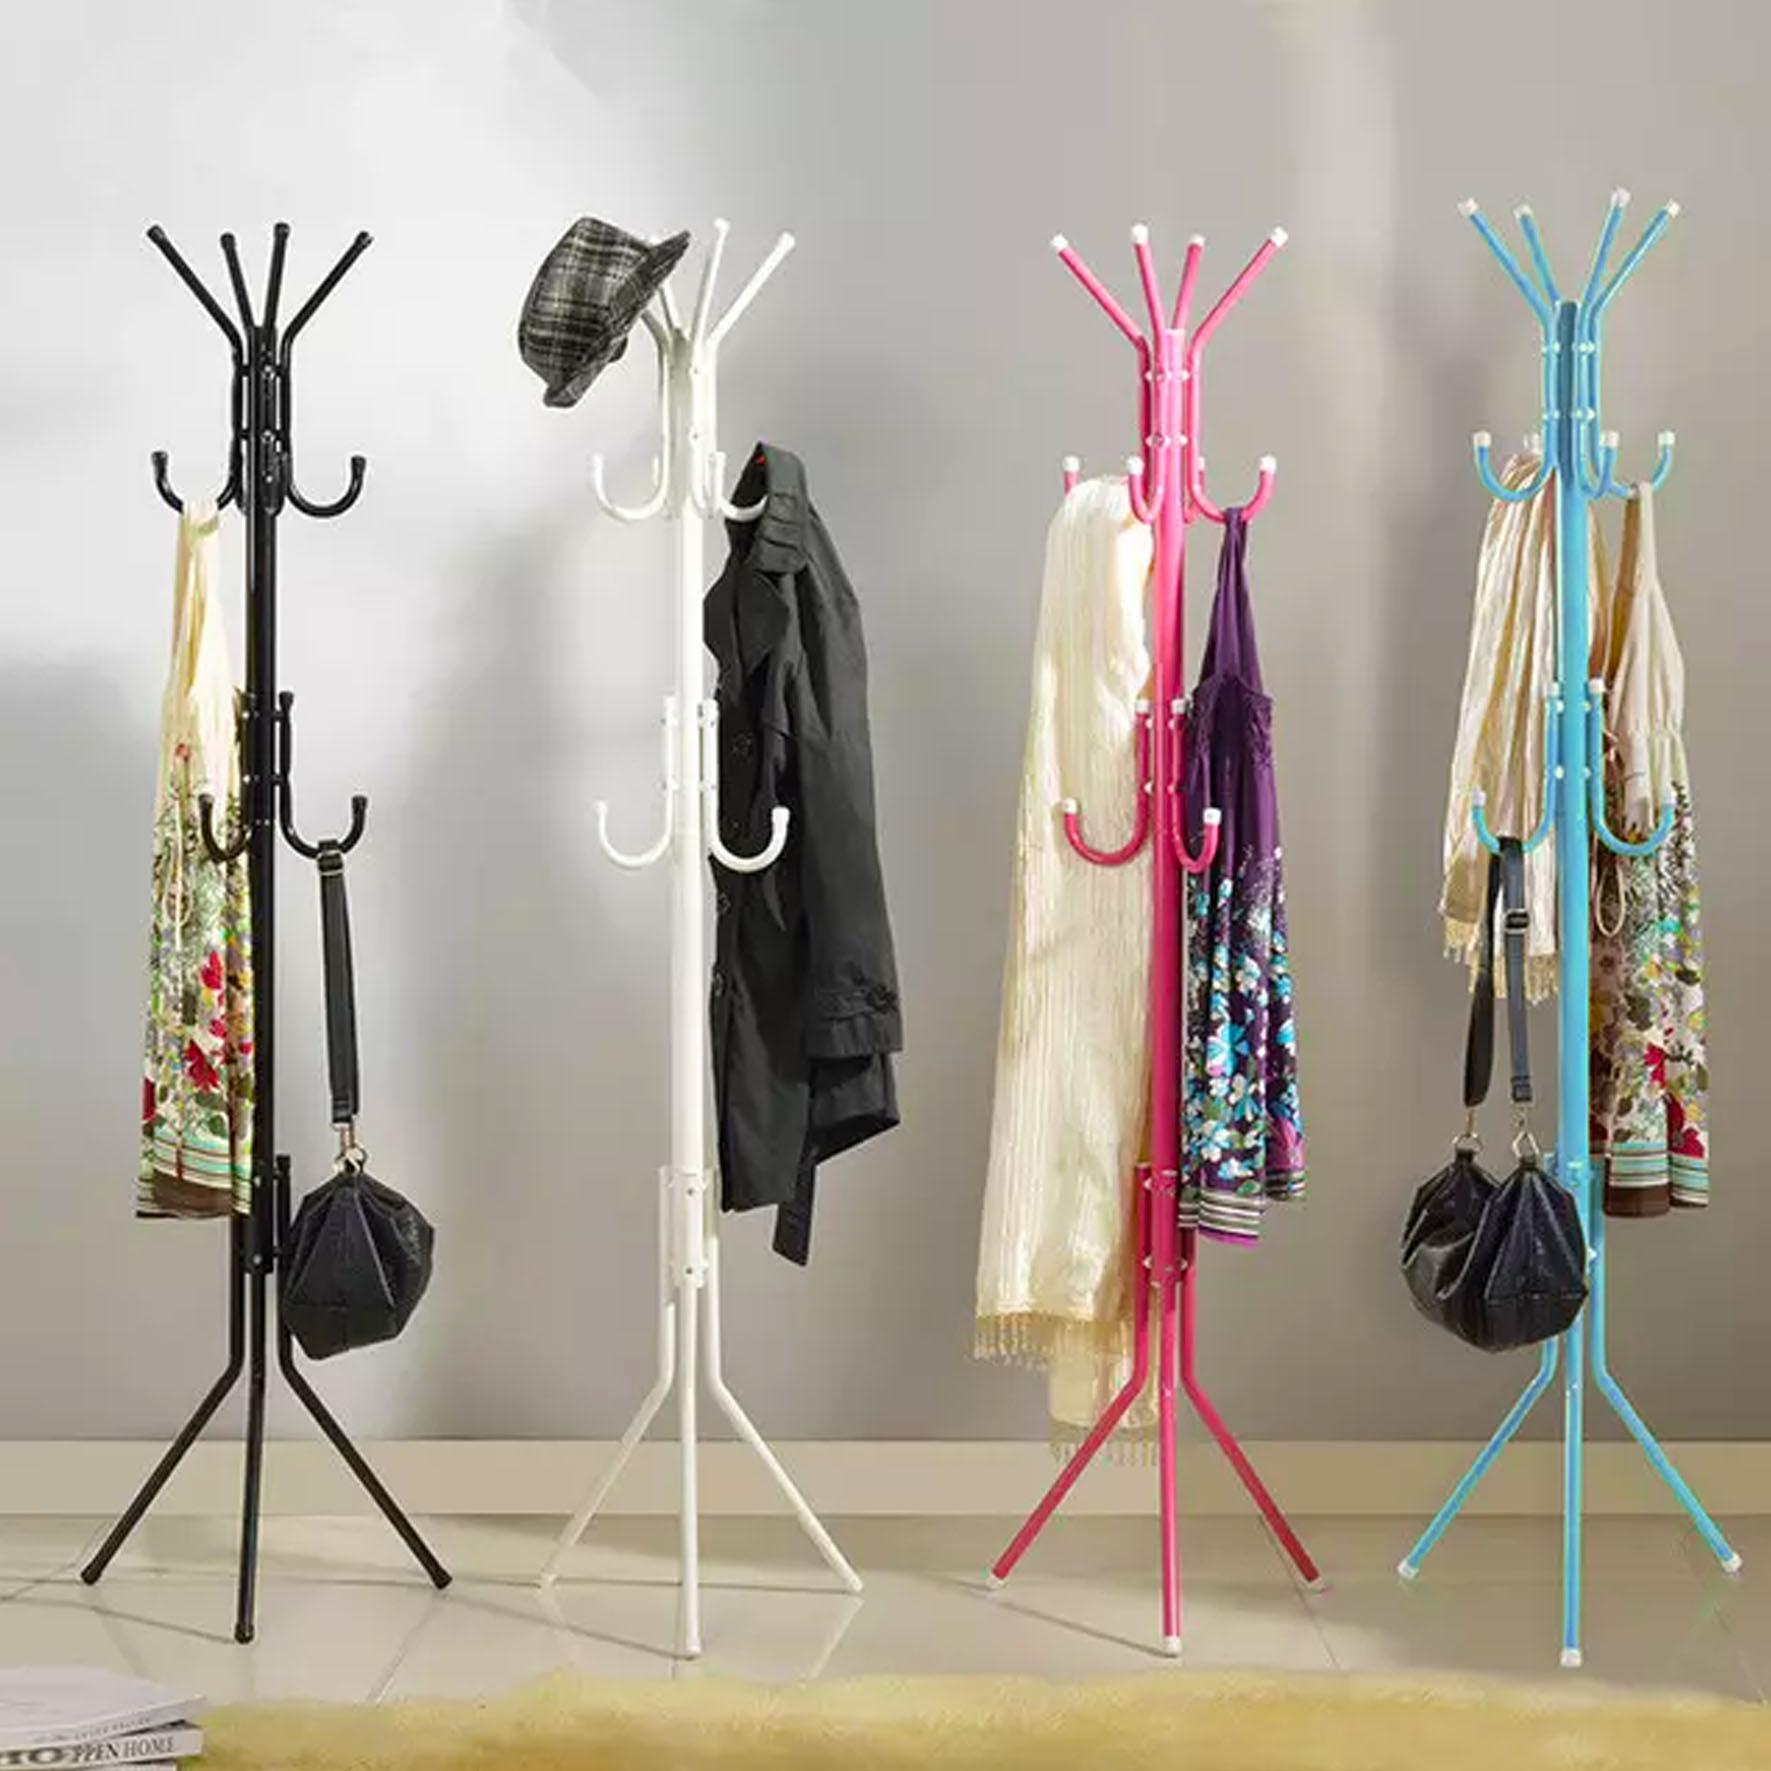 Hallway Furniture For Sale Entryway Prices Brands Standing Hanger Multifunction Stand Multi Level Stainless Steel Clothes Coat Rack